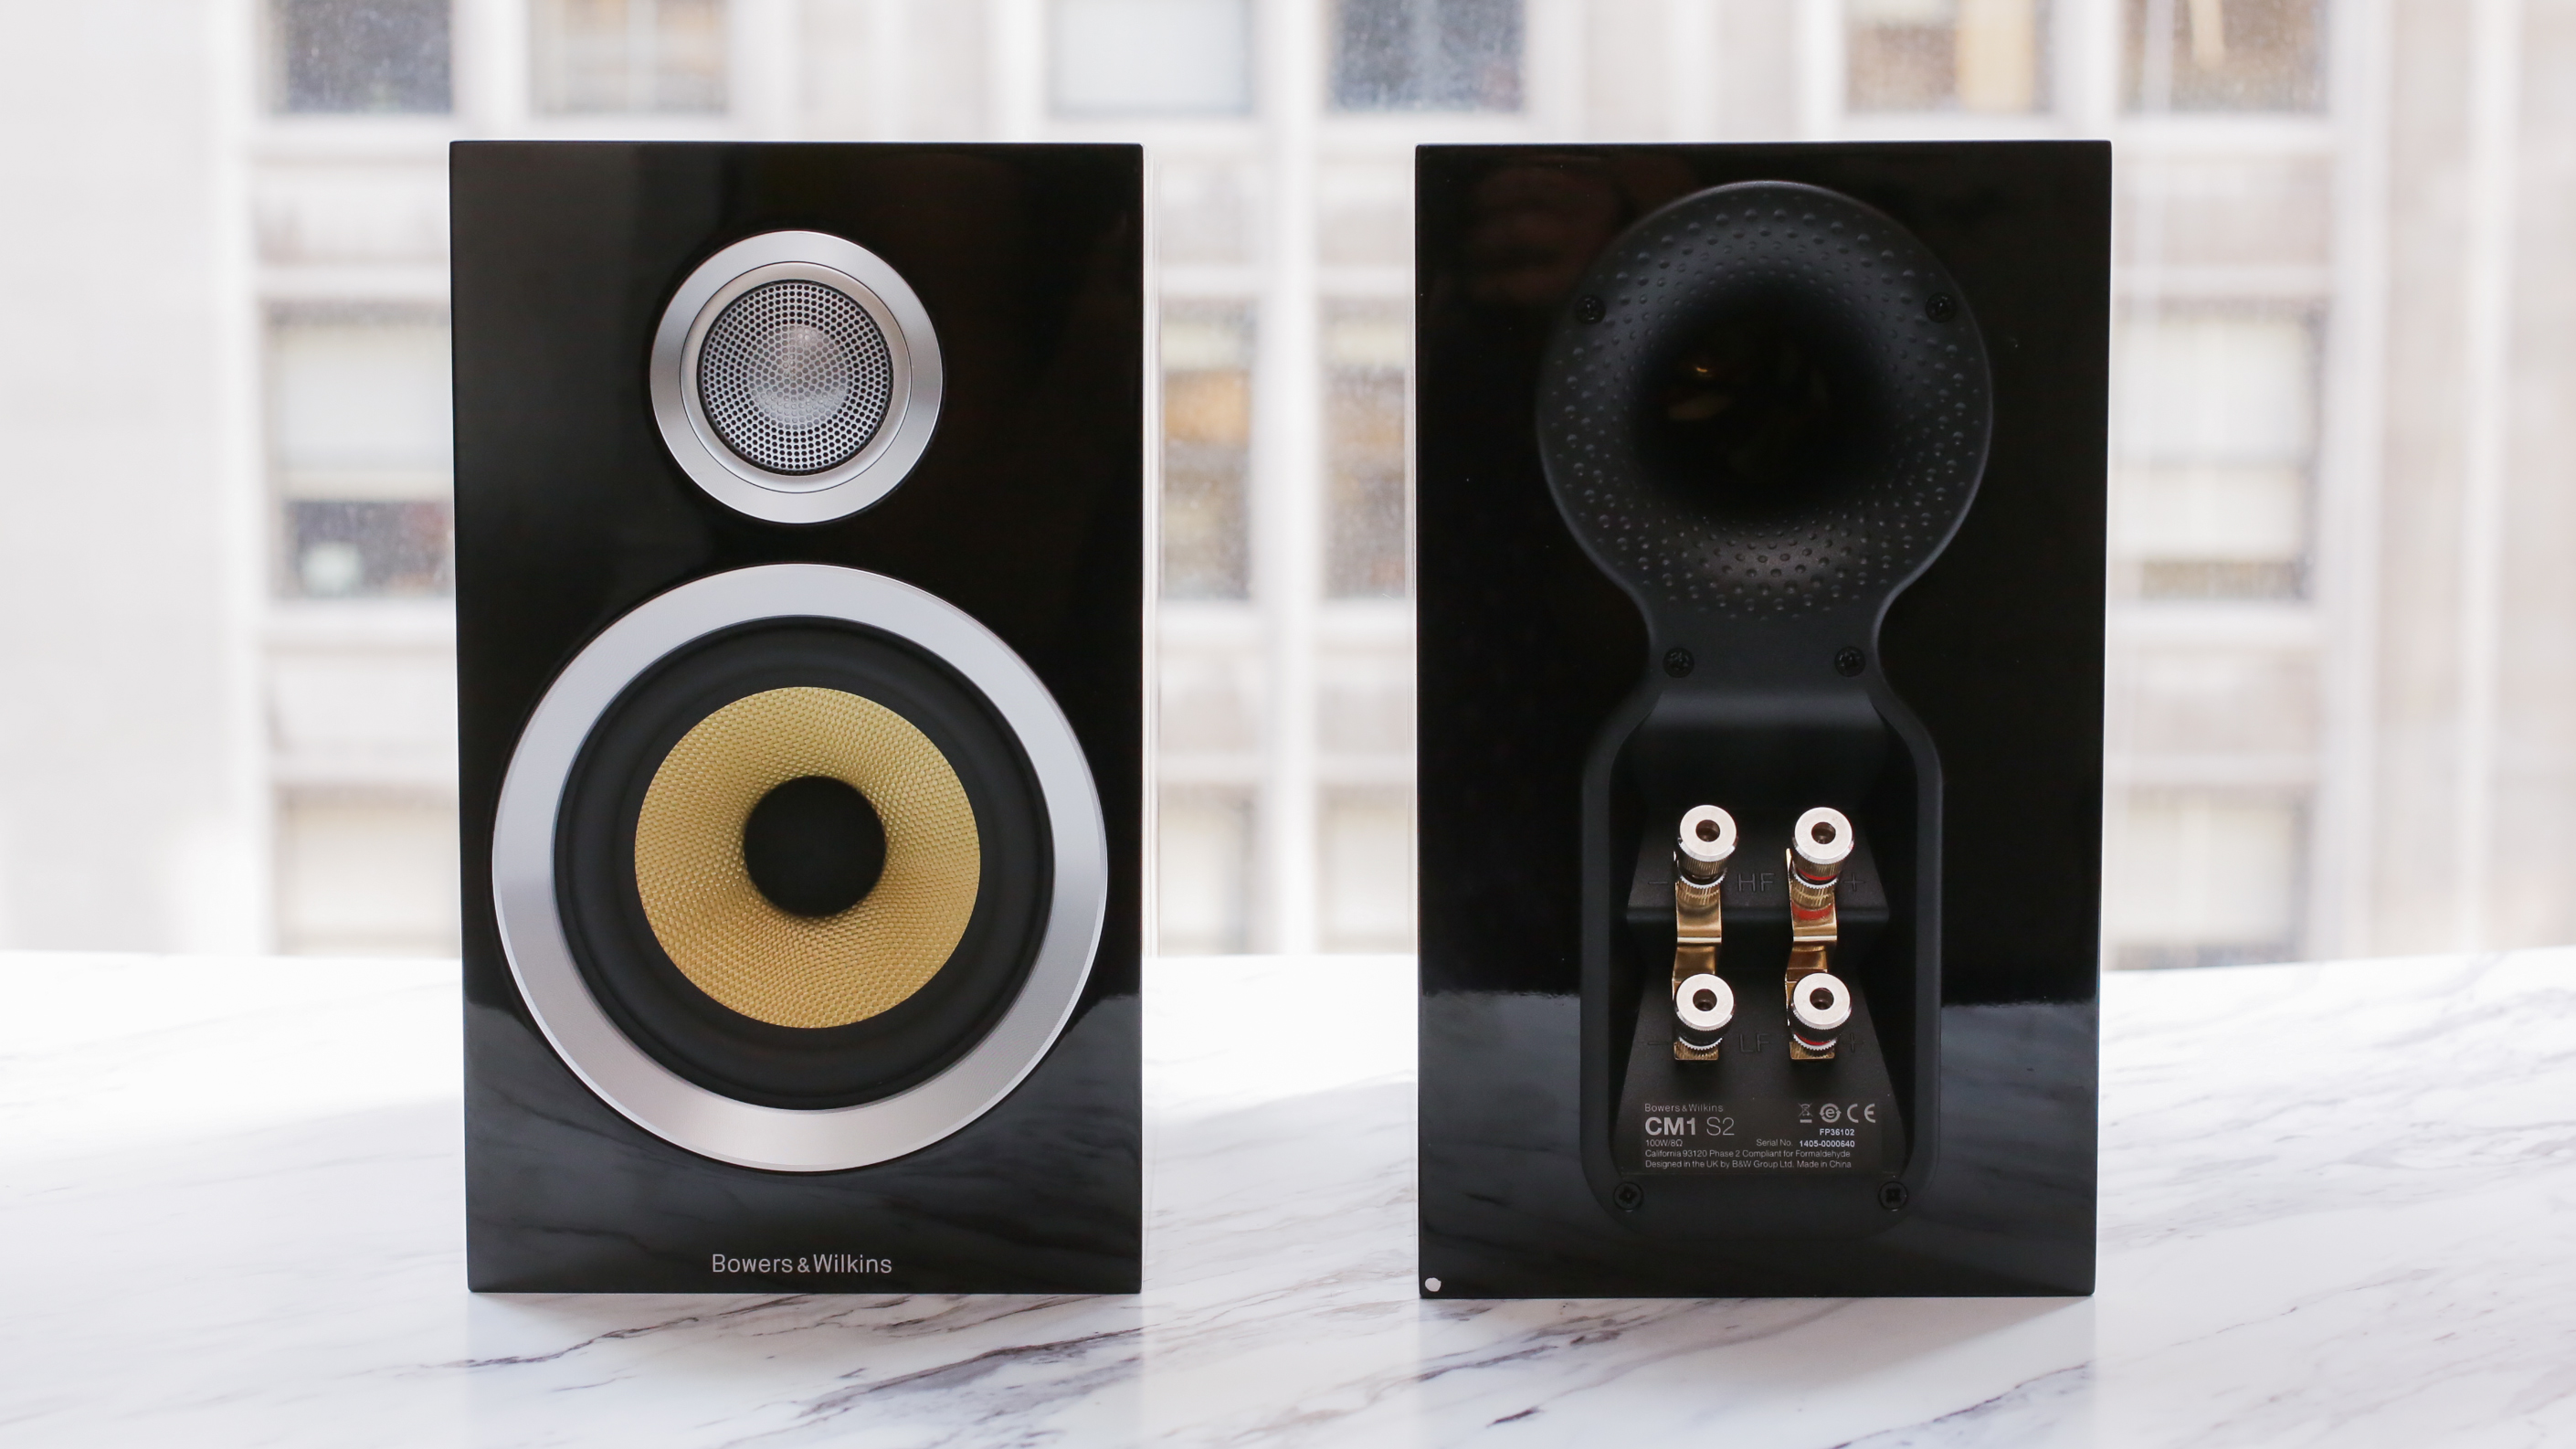 bowers-wilkins-cm1-s2-produt-photos03.jpg